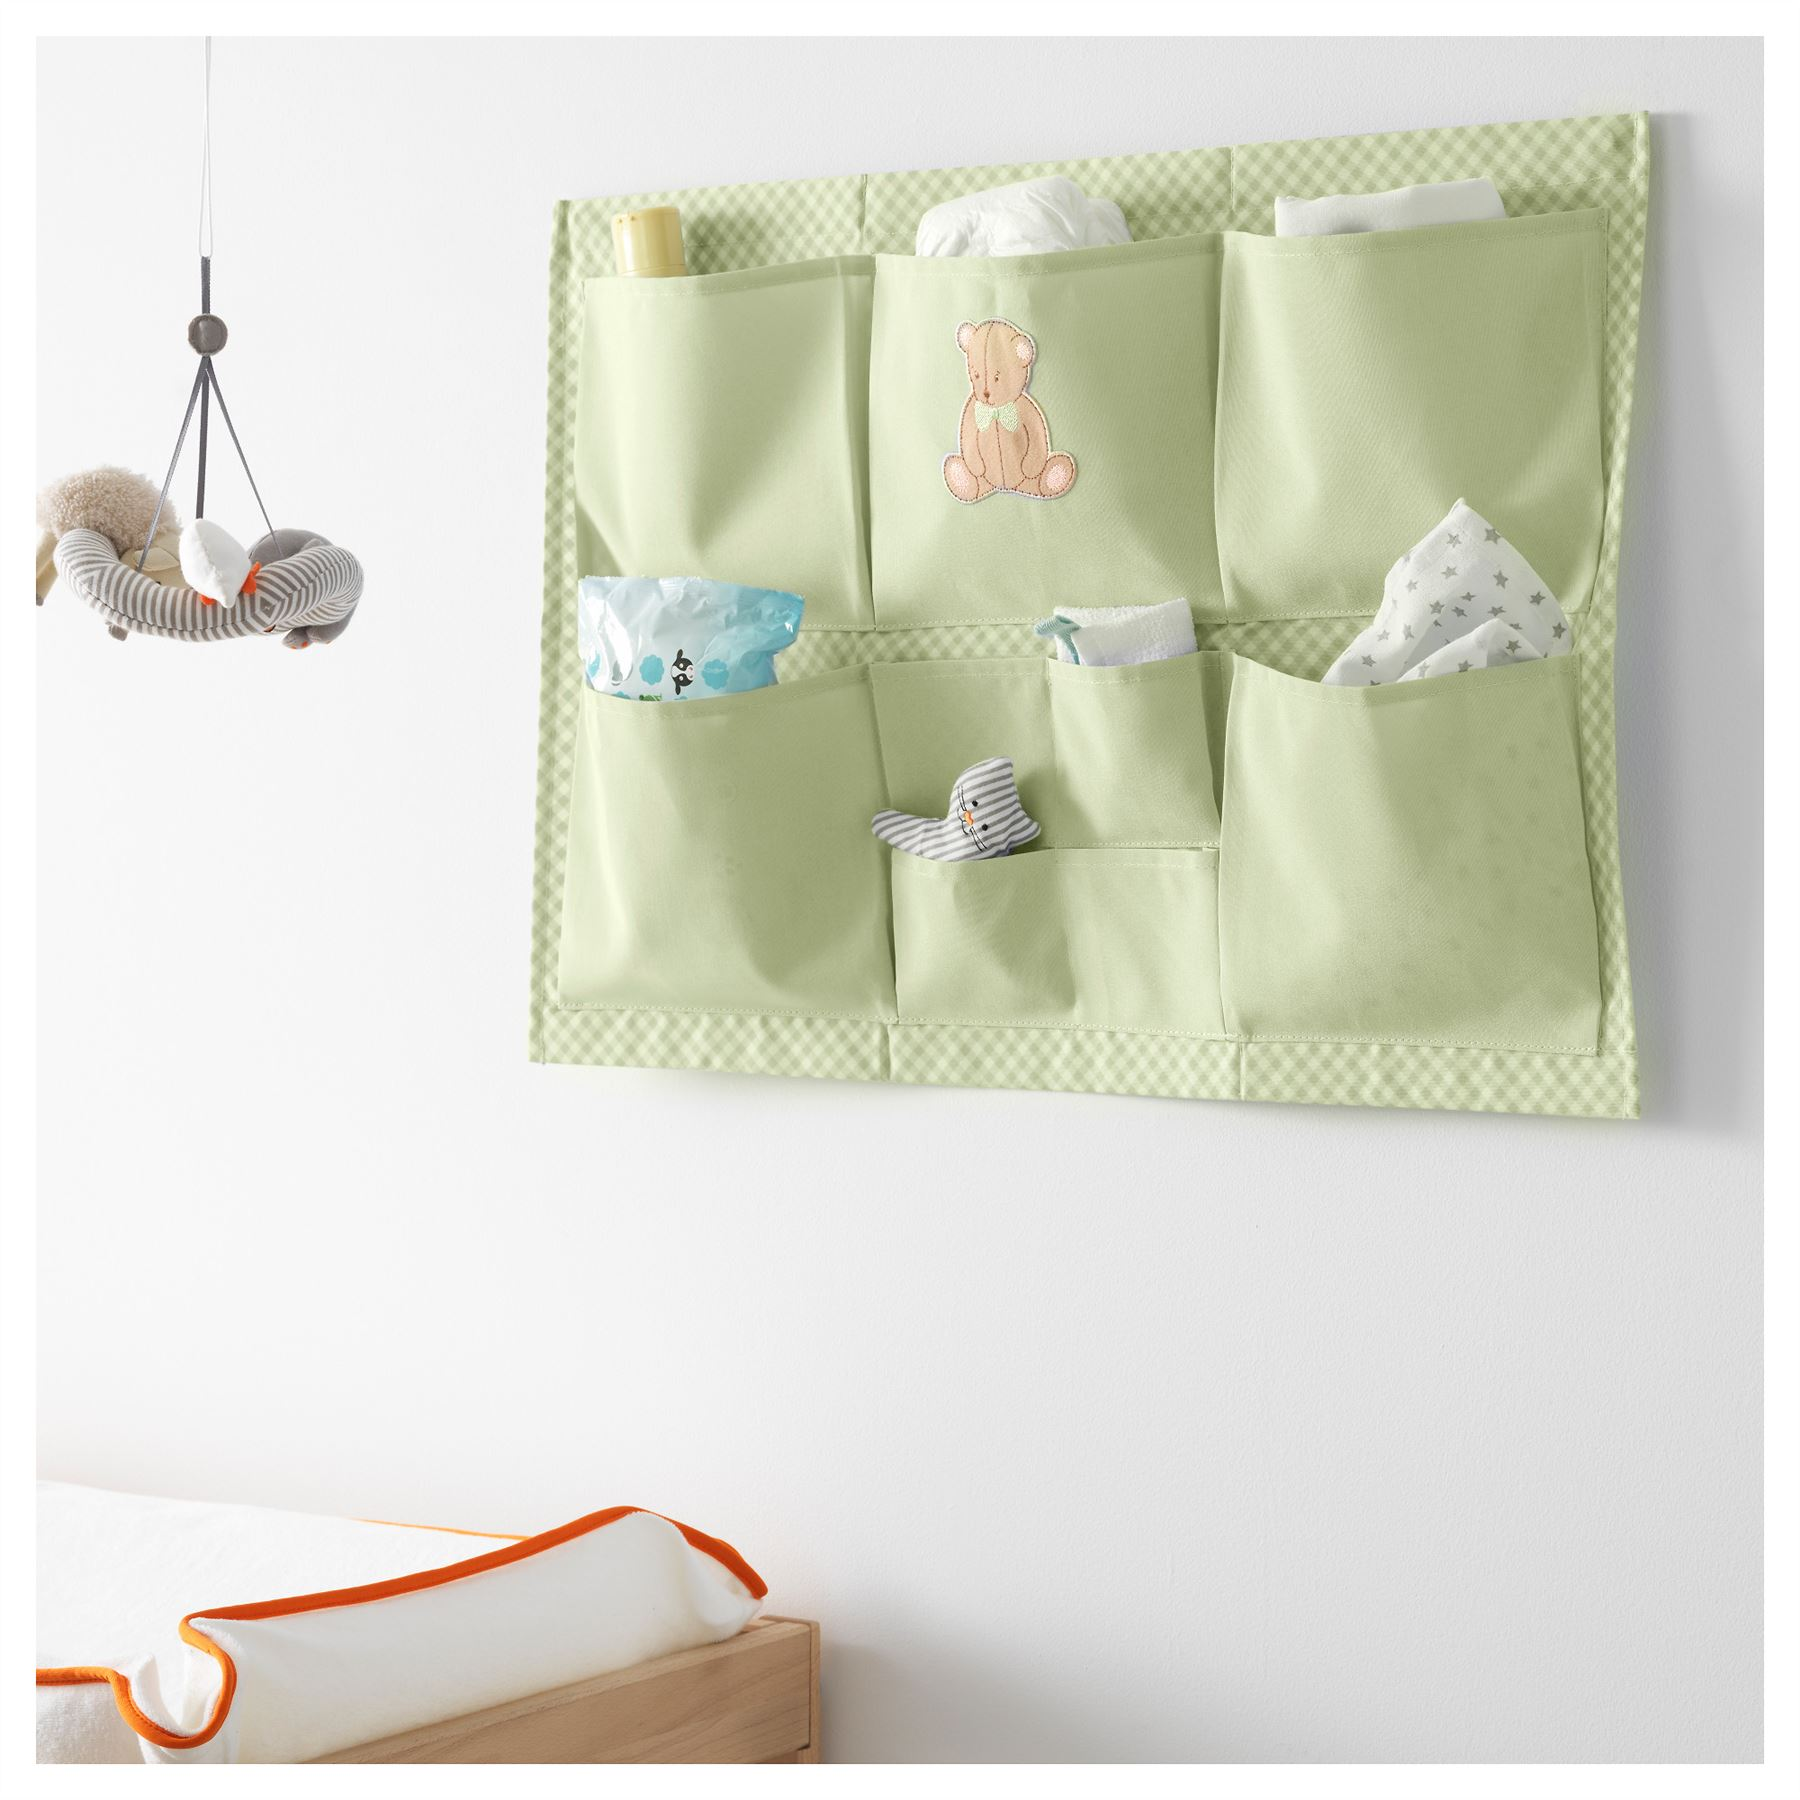 IKEA NANIG KIDS CHILDRENS WALL HANGING STORAGE POCKETS BOXES GREEN  sc 1 st  eBay & IKEA NANIG KIDS CHILDRENS WALL HANGING STORAGE POCKETS BOXES GREEN ...